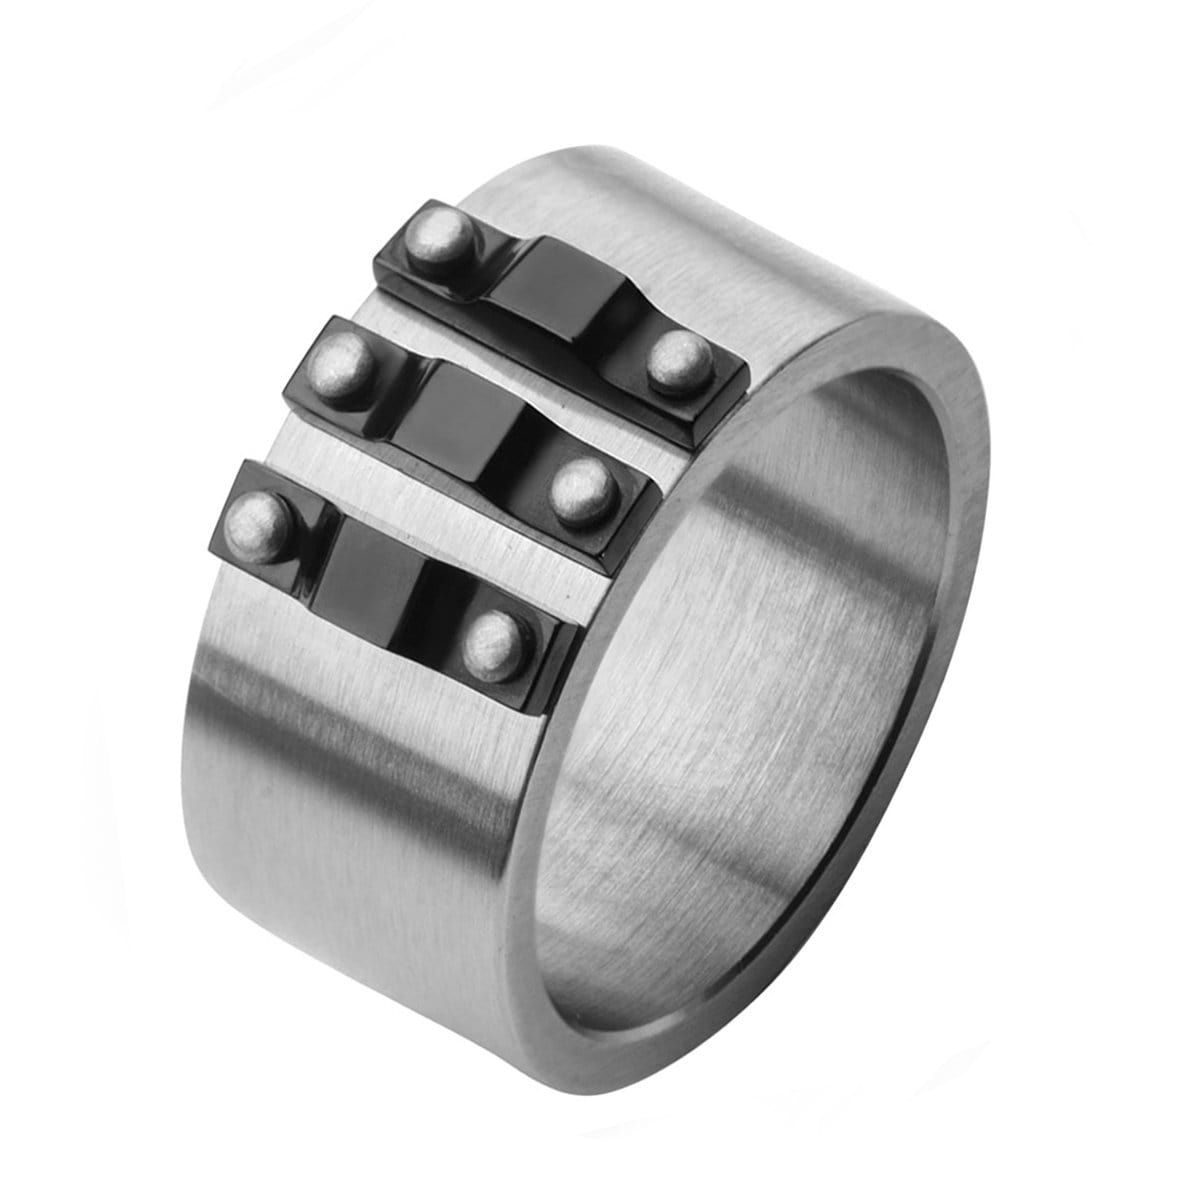 Black & Silver Stainless Steel Bolted Ridge Band Rings